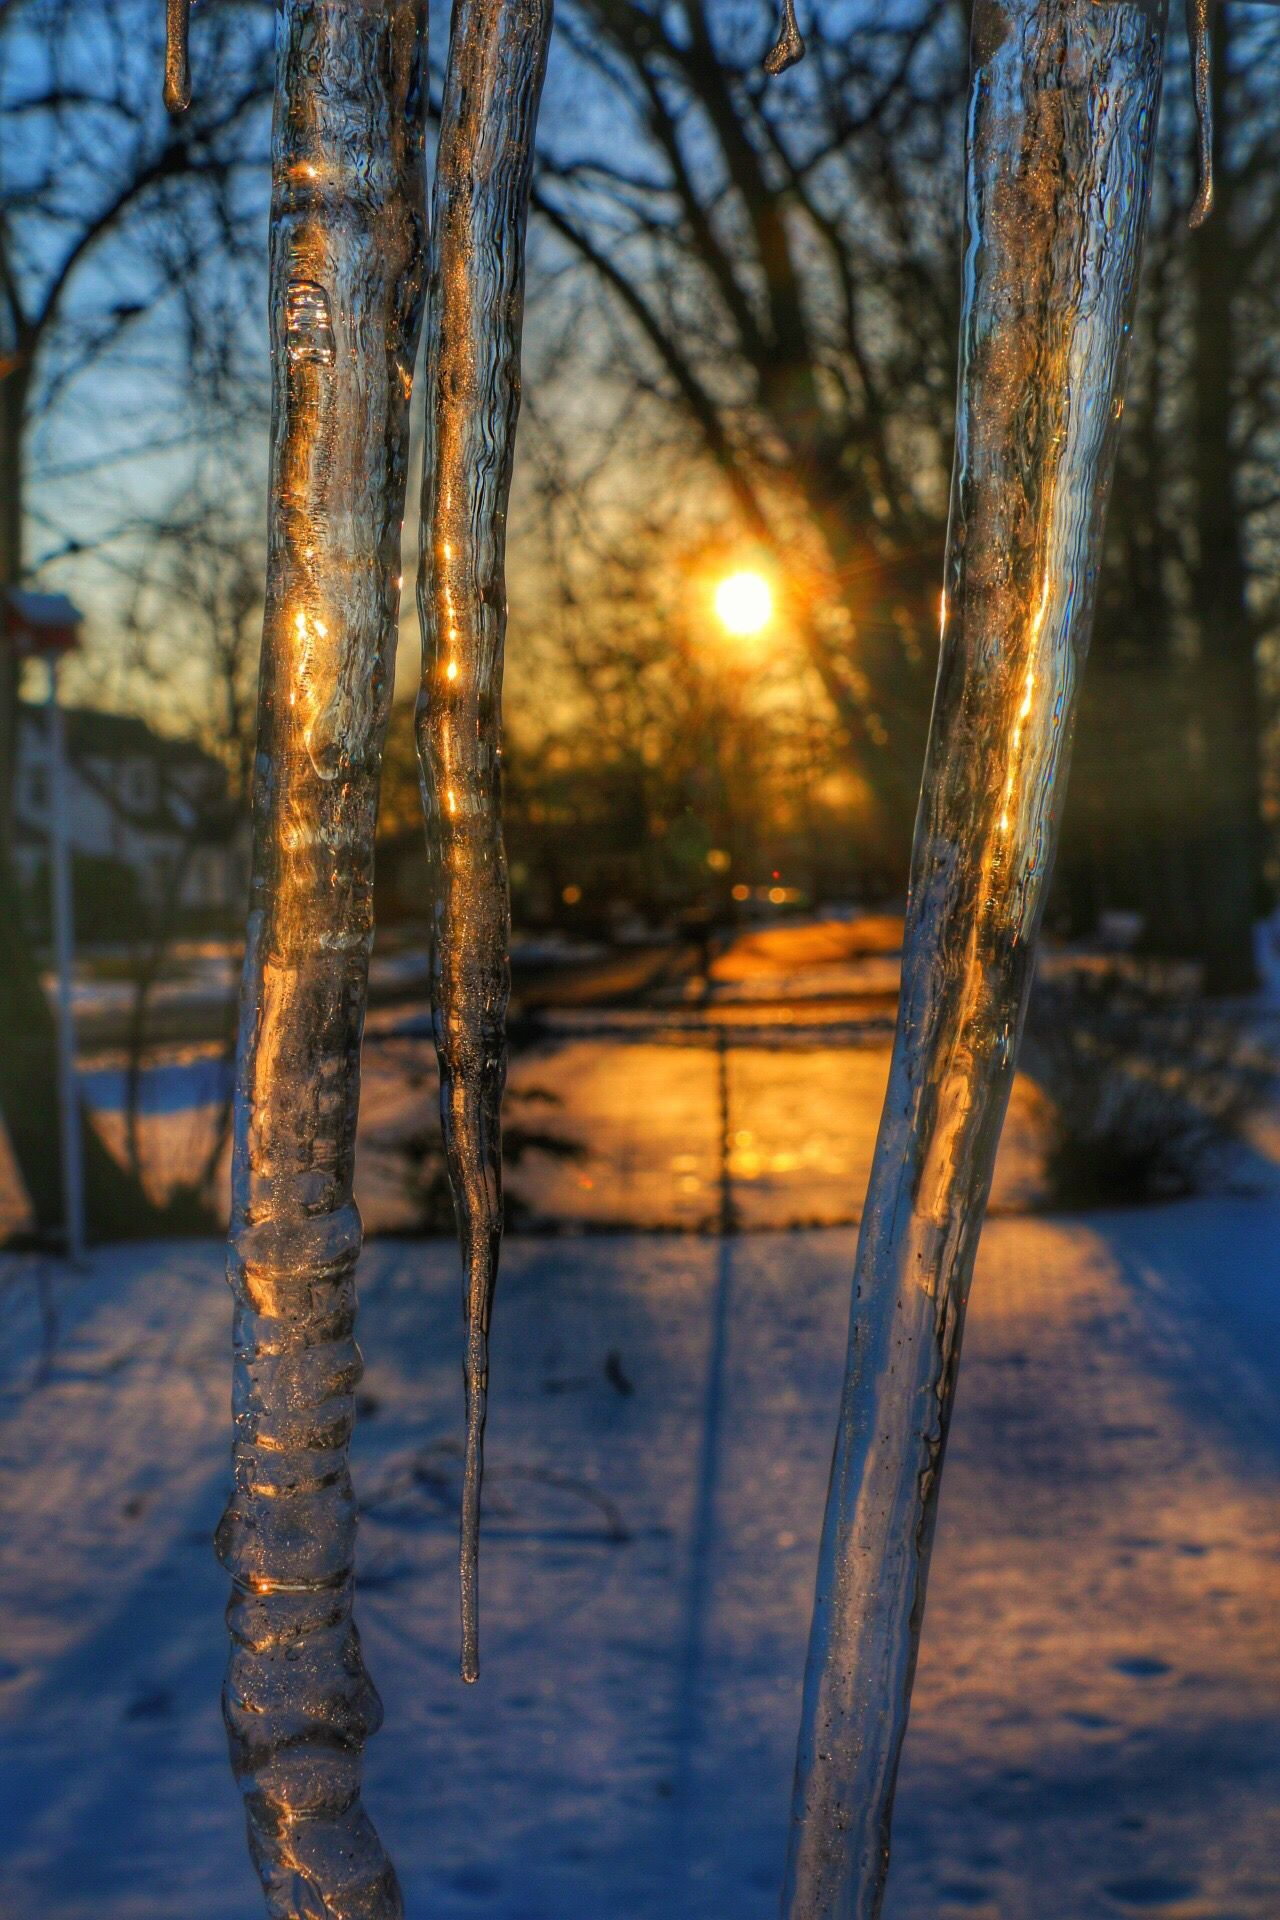 Tree Nature Tree Trunk Branch Outdoors Snow Cold Temperature Tranquility Forest Winter No People Day Ice Beauty In Nature Tranquil Scene Bare Tree Sky Icicles Sunset Ice Backgrounds Gold Shiny Gold Colored Close-up